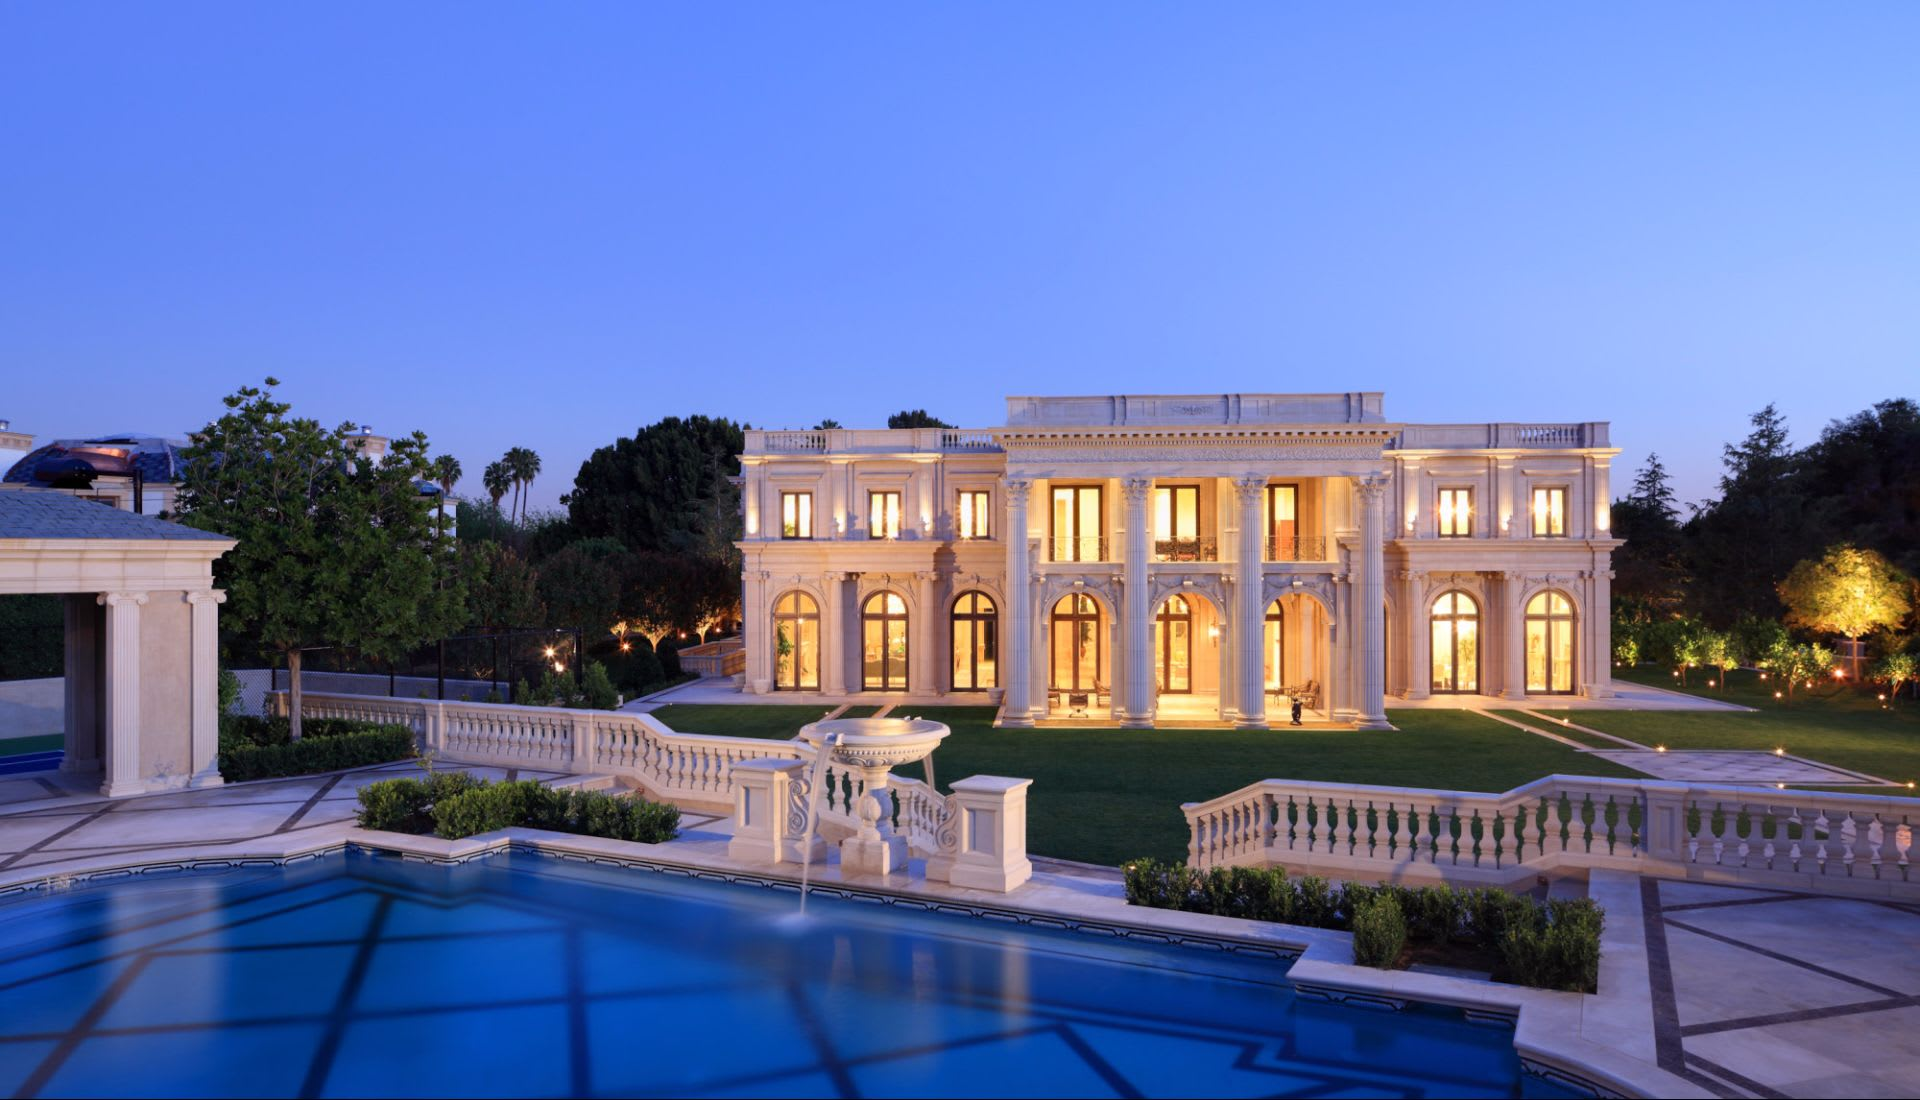 Jade Mills Beverly Hills Real Estate Agent Luxury Homes Bel Air - Luxury-property-in-brentwood-park-beverly-hills